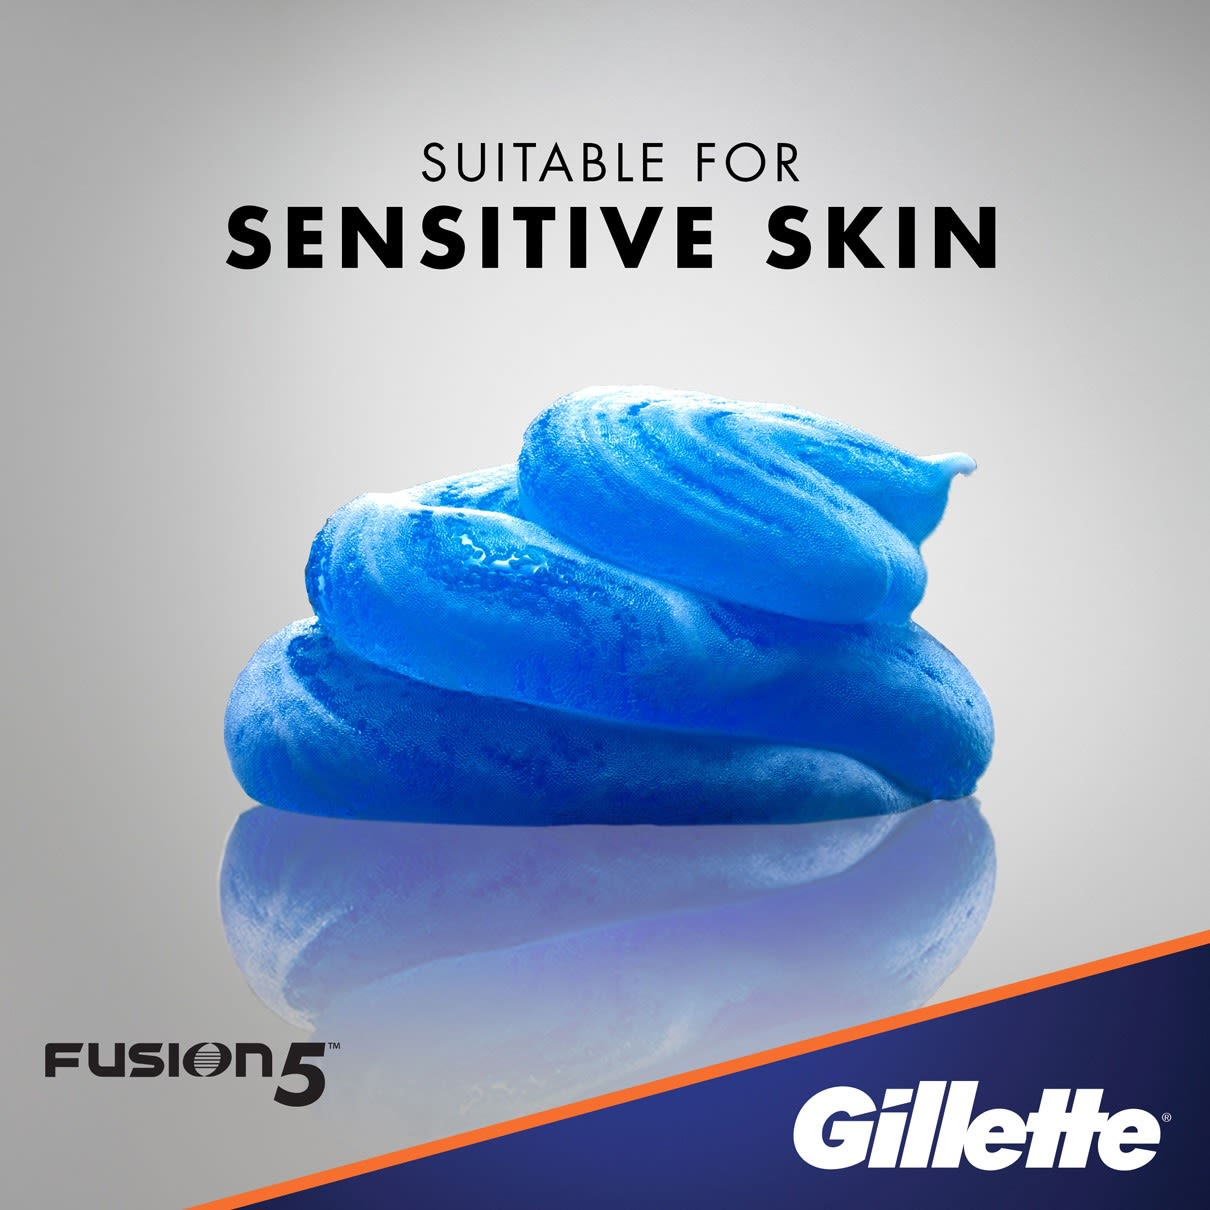 Gillette® Fusion5™ Ultra Sensitive Shave Gel